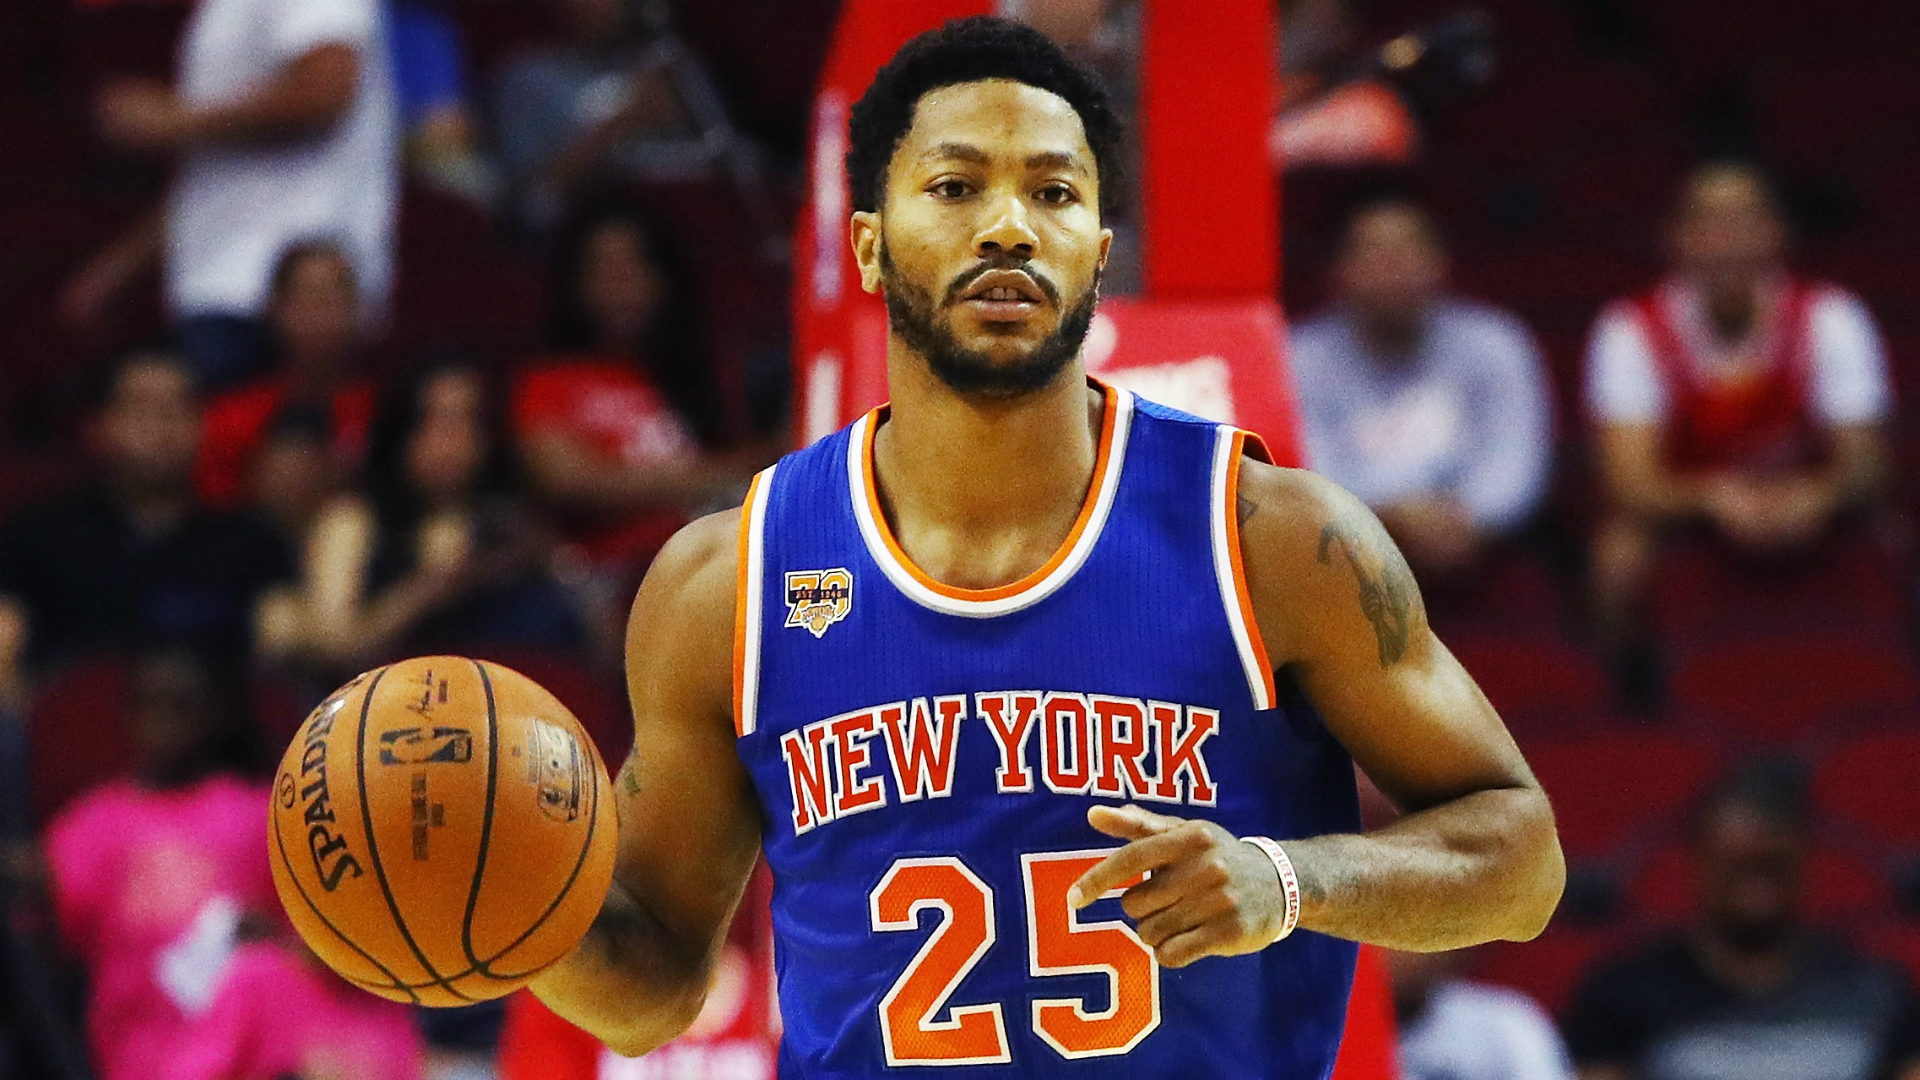 Group Of Derrick Rose Wallpaper 2016 Jersey